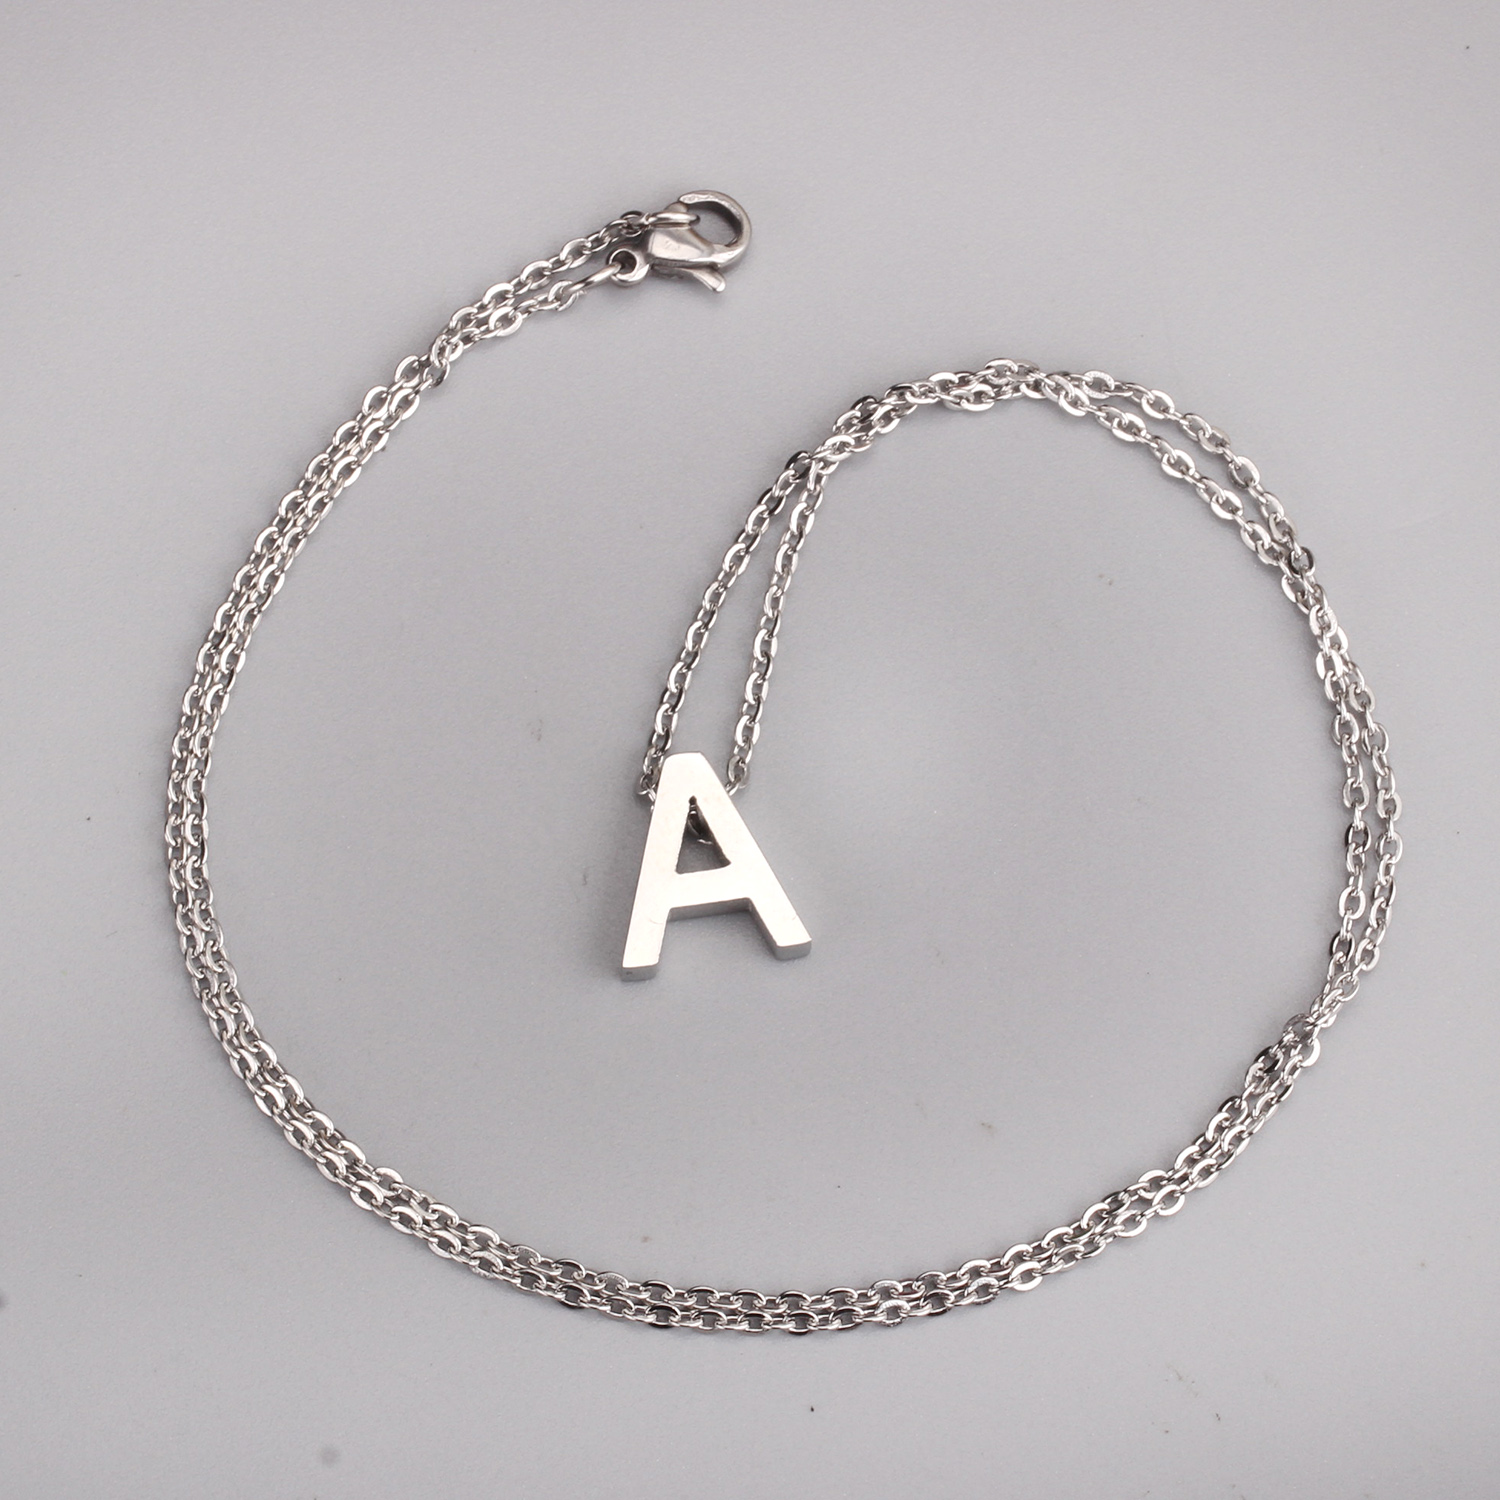 personalized necklace letter com jewelry more pendant custom affinity dancing diamond content sterling qvc initial